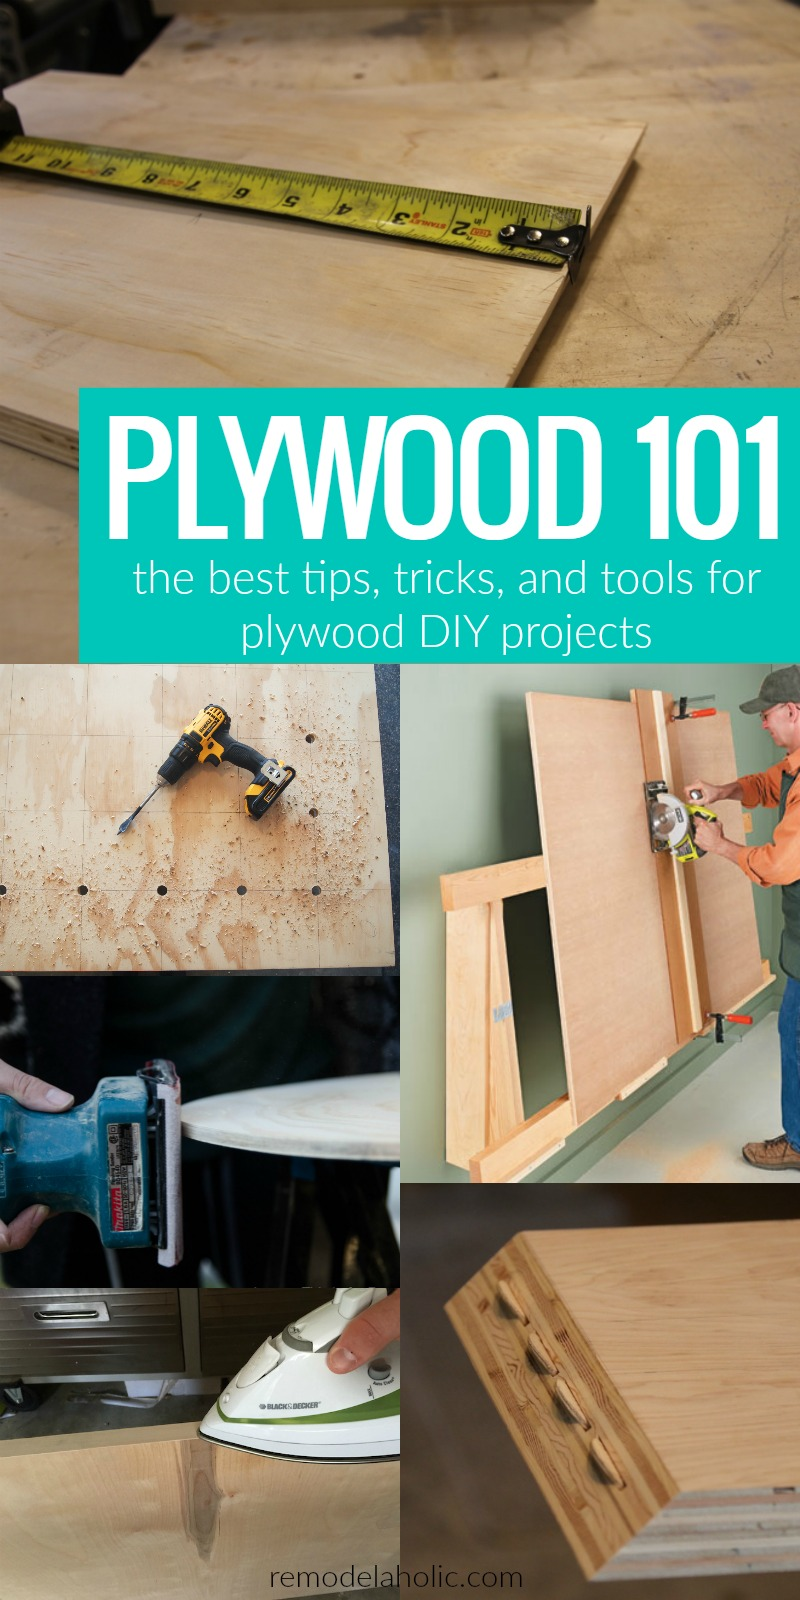 Plywood 101: Best Plywood Tips For